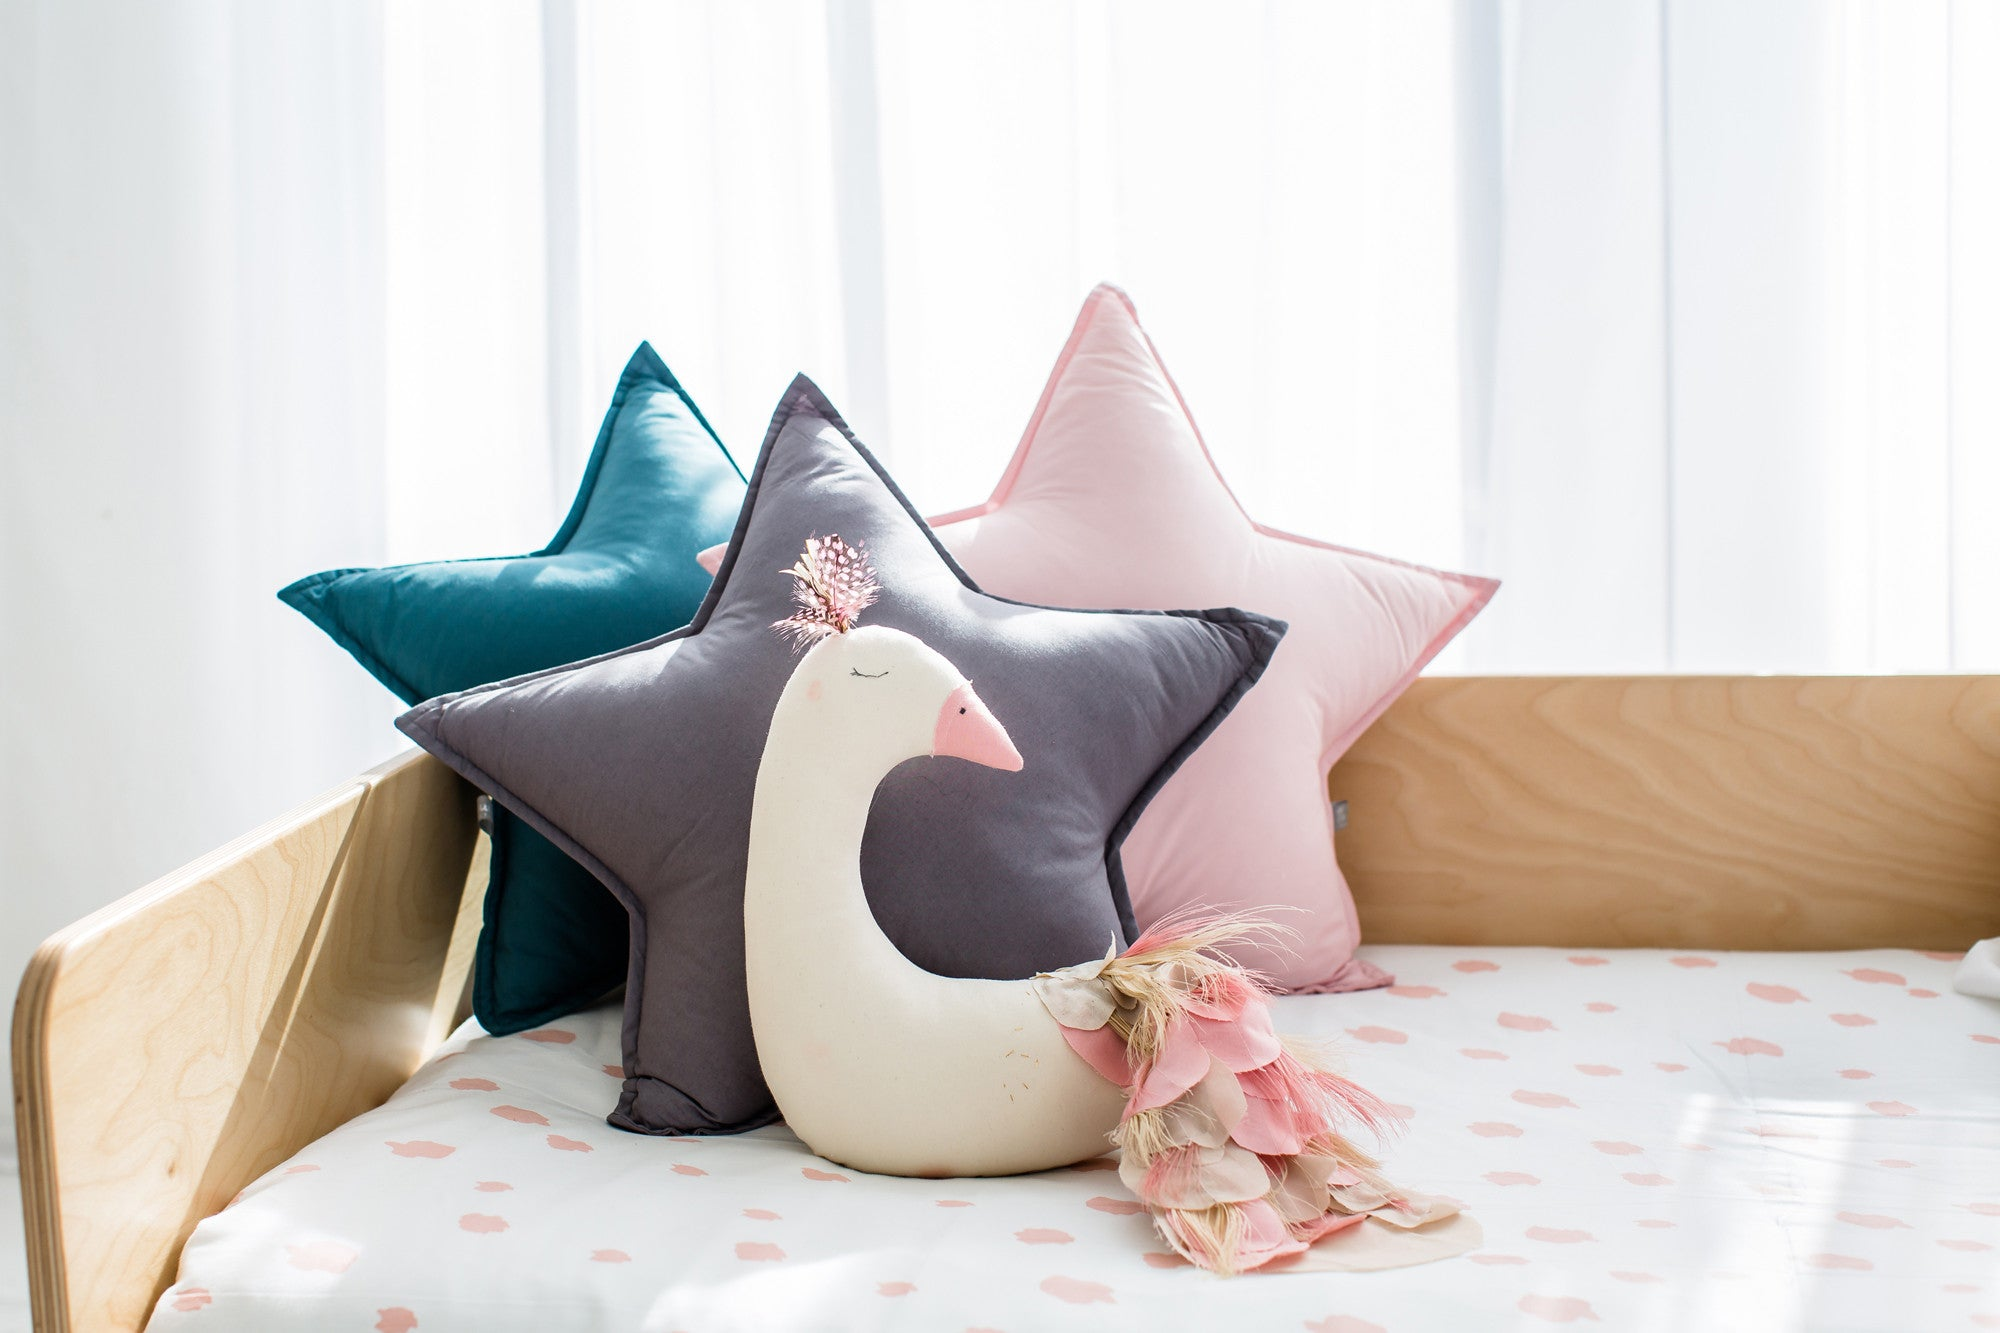 Star cushions and peacock decoration, available at Bobby Rabbit.